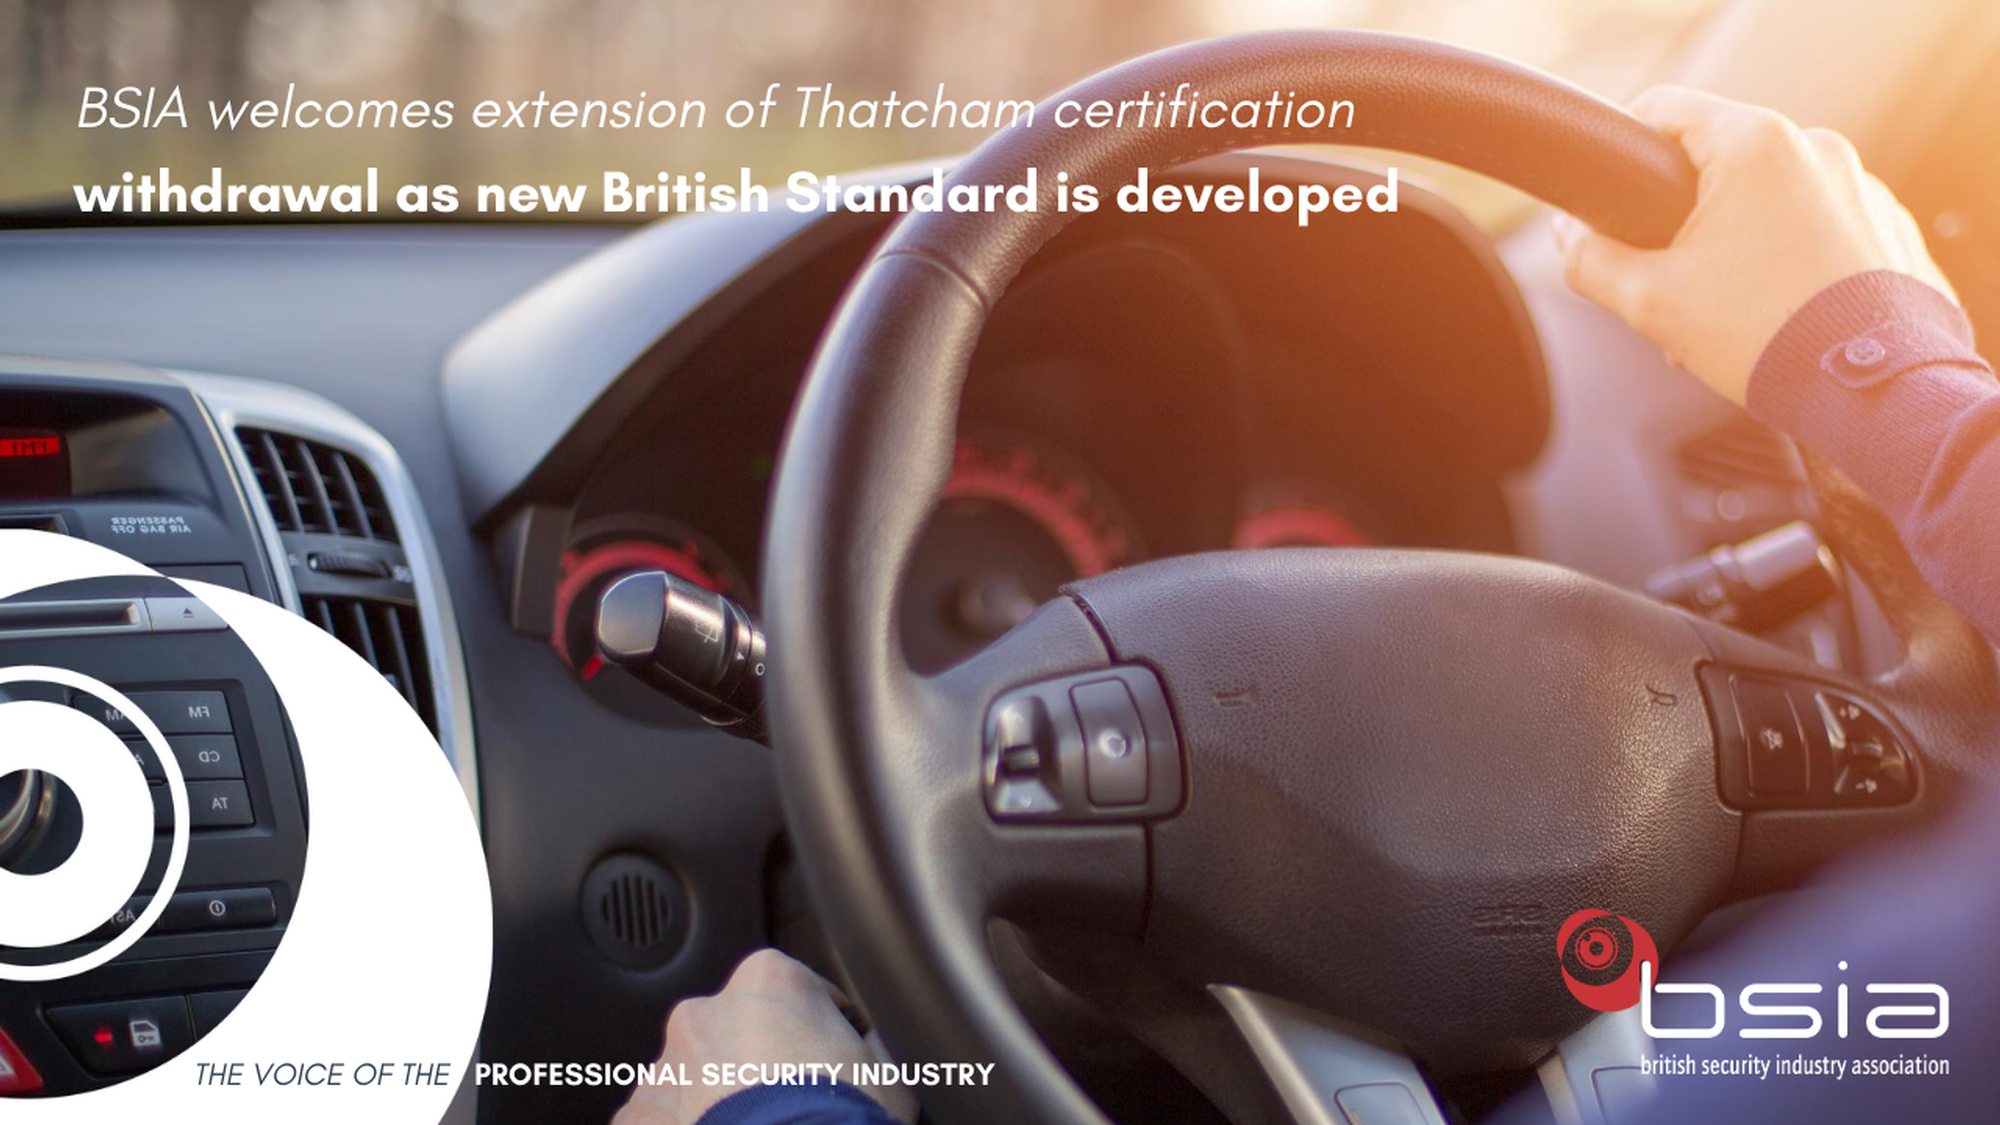 BSIA welcomes extension of Thatcham certification withdrawal as new British Standard is developed